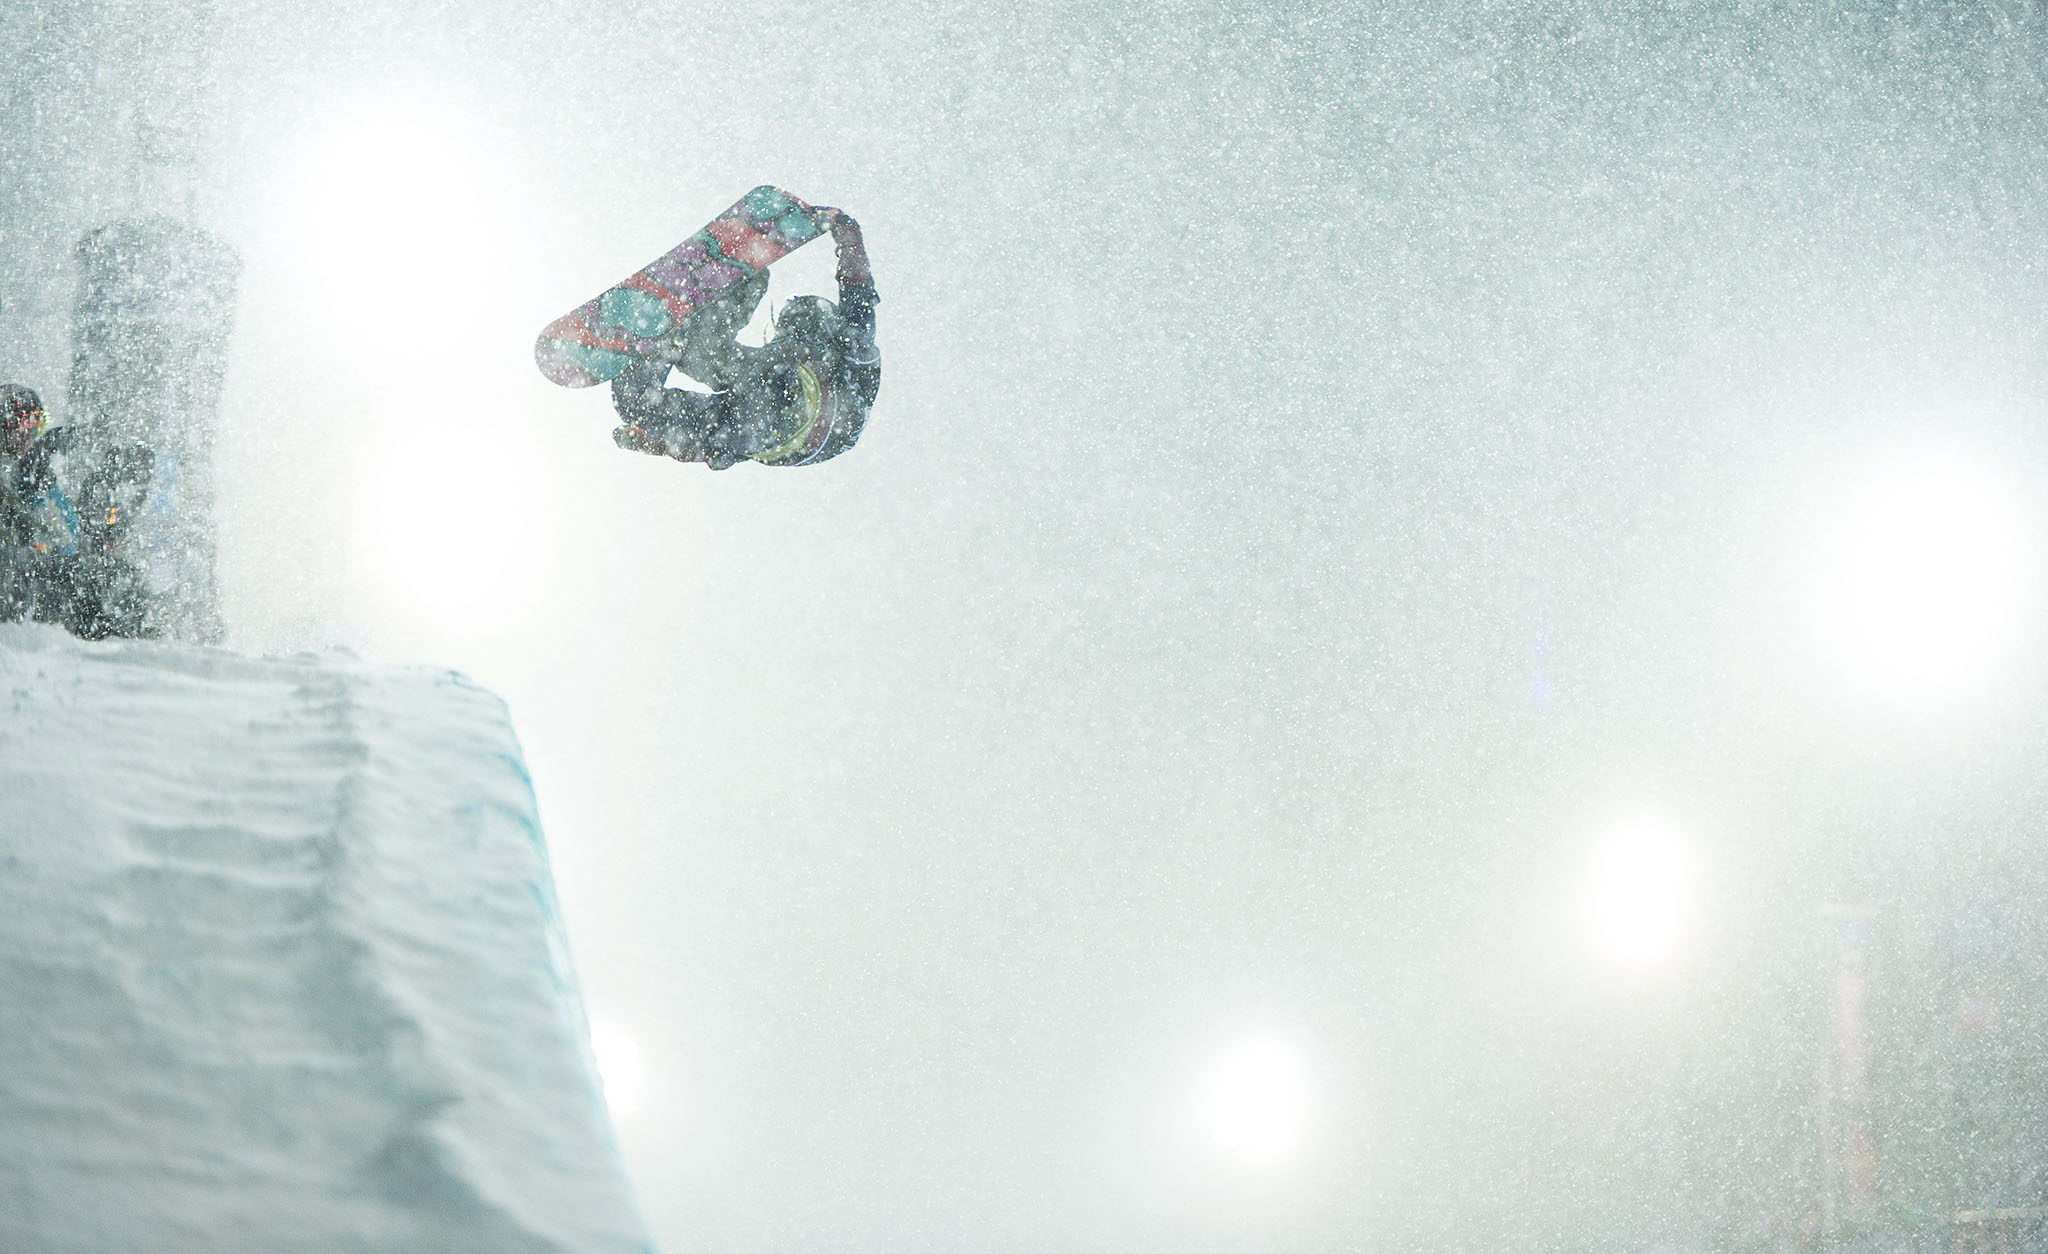 Weather wreaked a little havoc on the Women's Snowboard SuperPipe finals to say the least, but the women still managed to put on a great show.